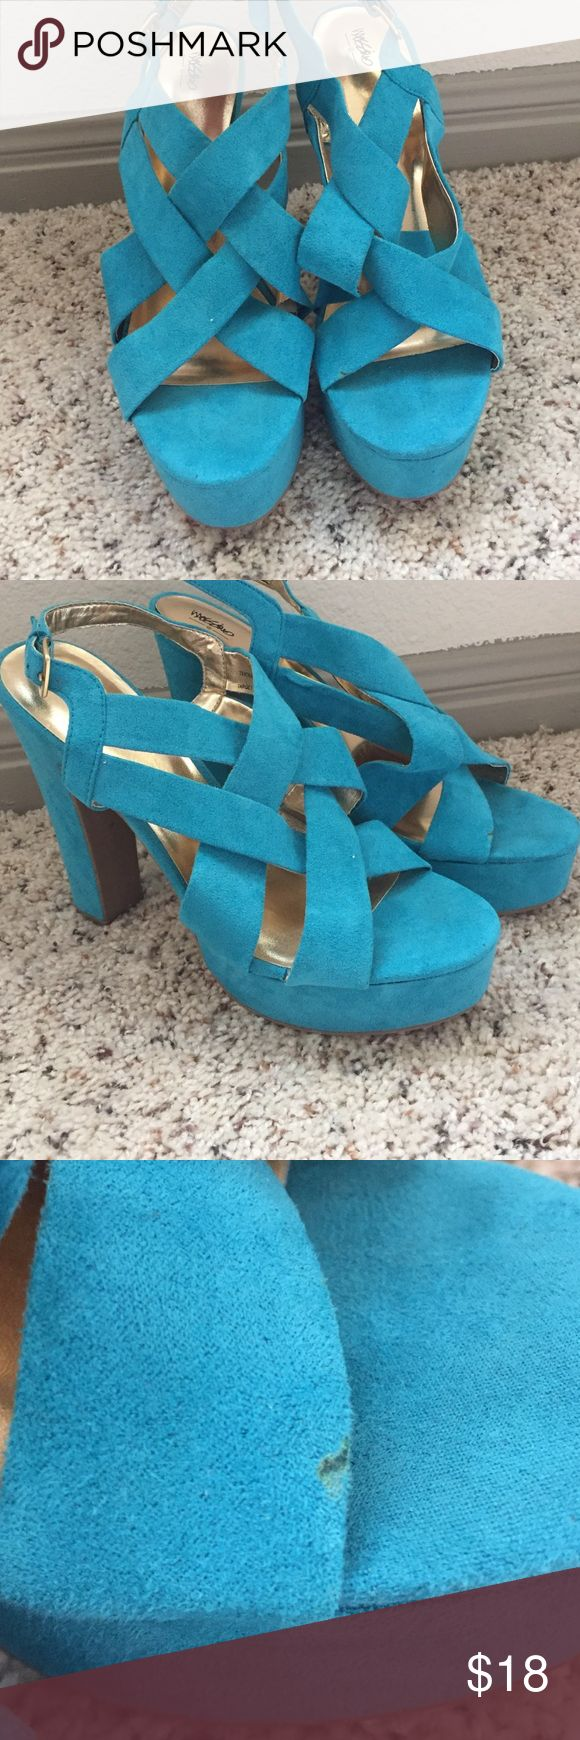 Blue Suede Pumps Small blemish on left shoe but in otherwise perfect condition. Worn once Mossimo Supply Co Shoes Heels